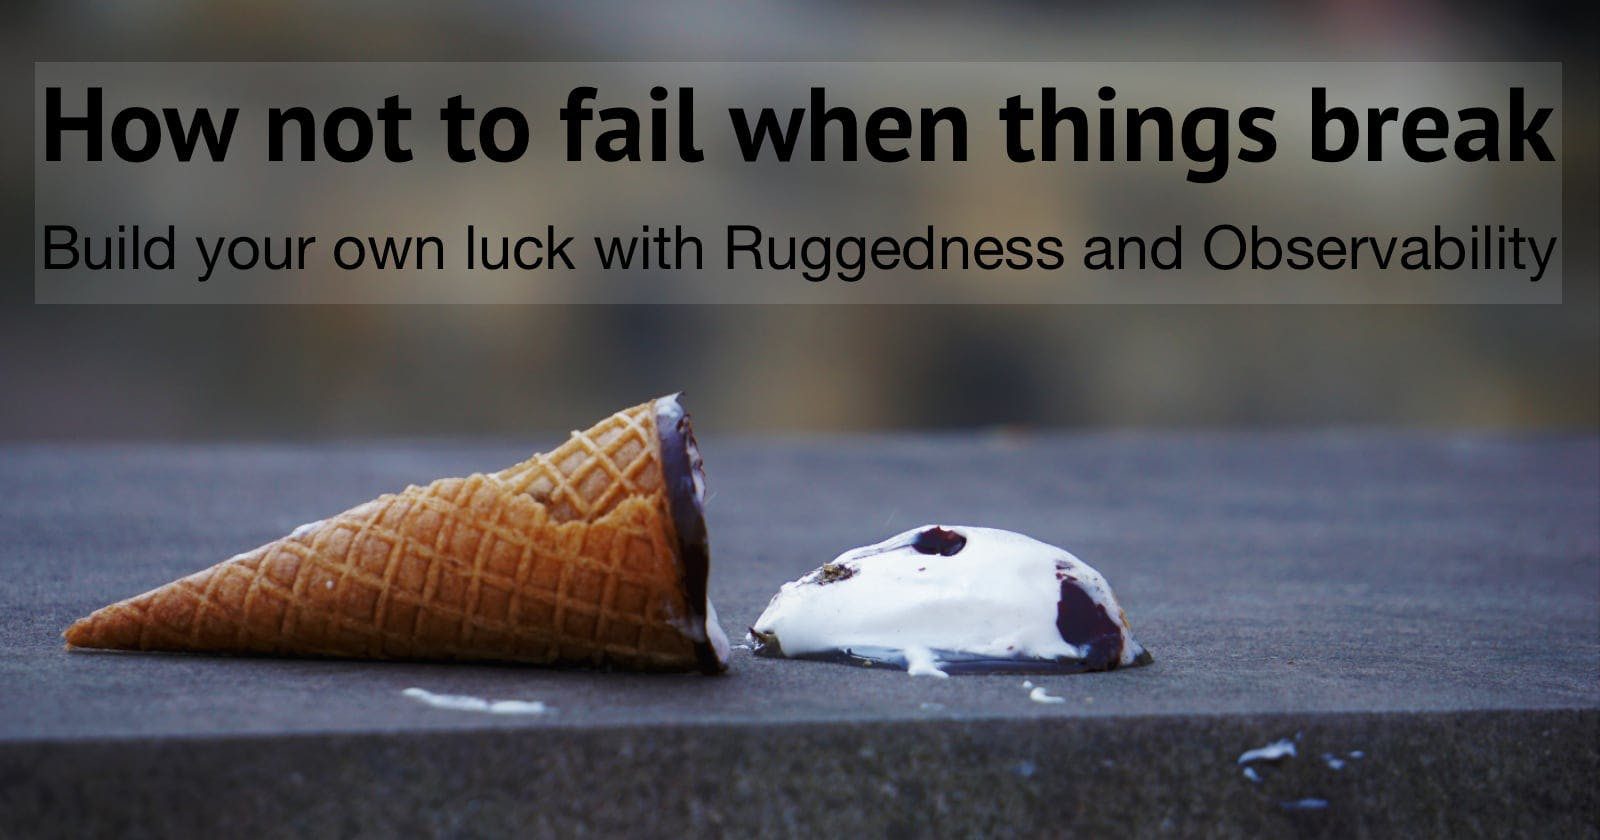 Being Rugged: How not to fail when things break.